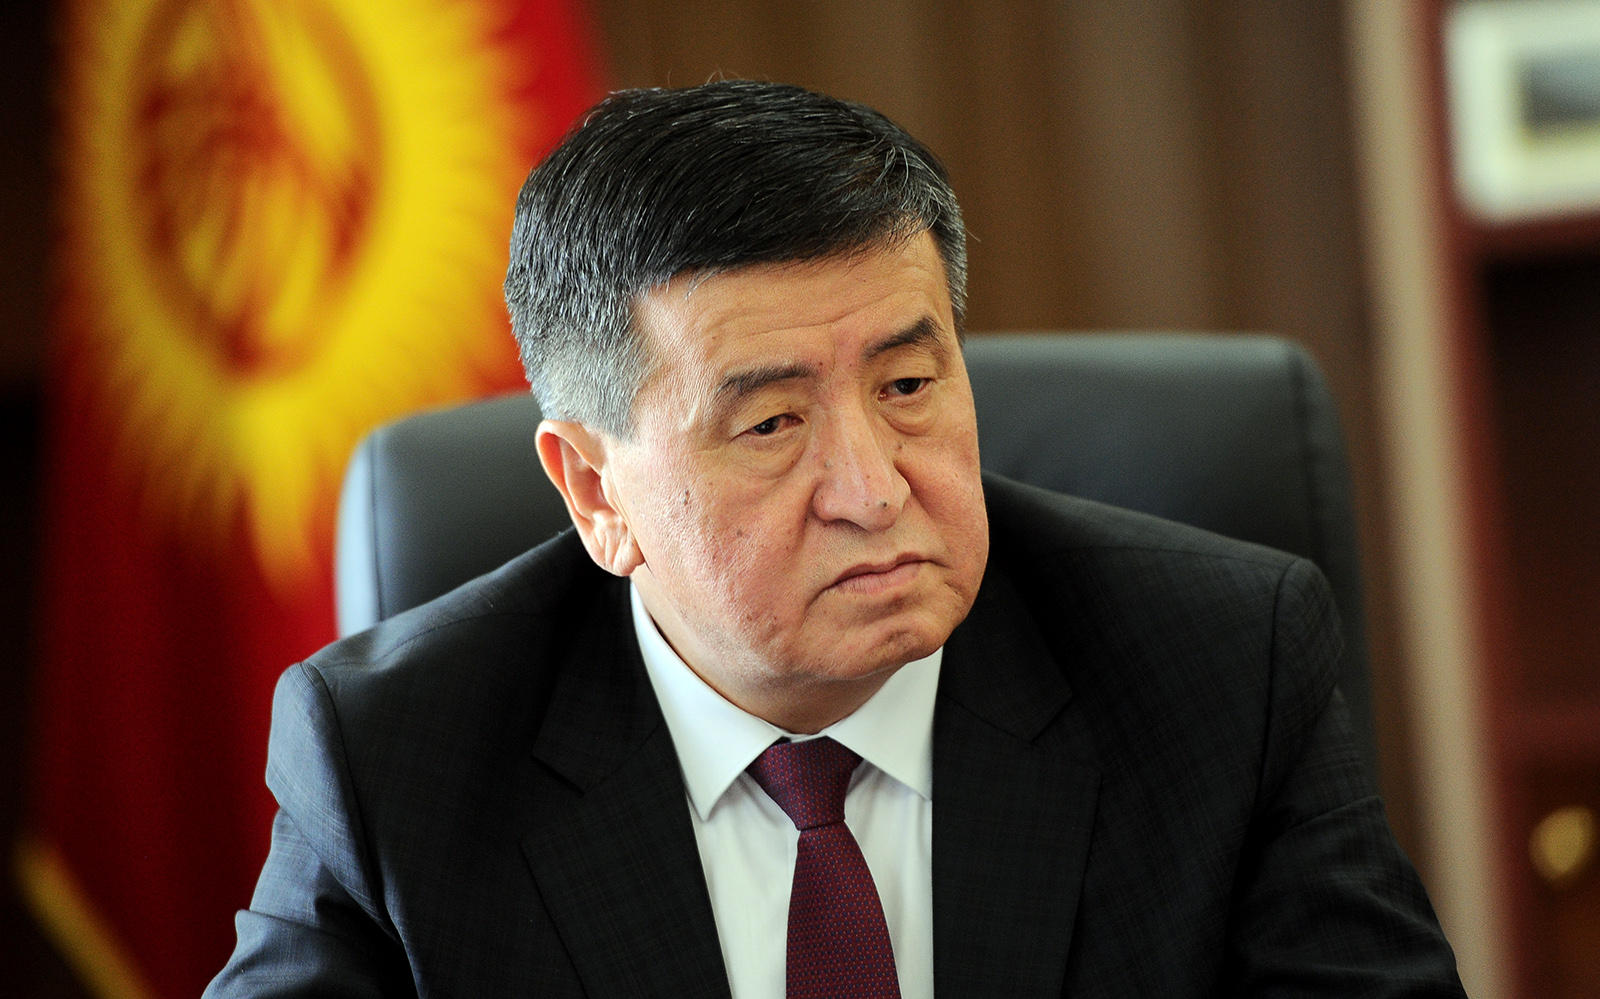 President: Kyrgyzstan adheres to and fulfills all the values found in the Universal Declaration of Human Rights